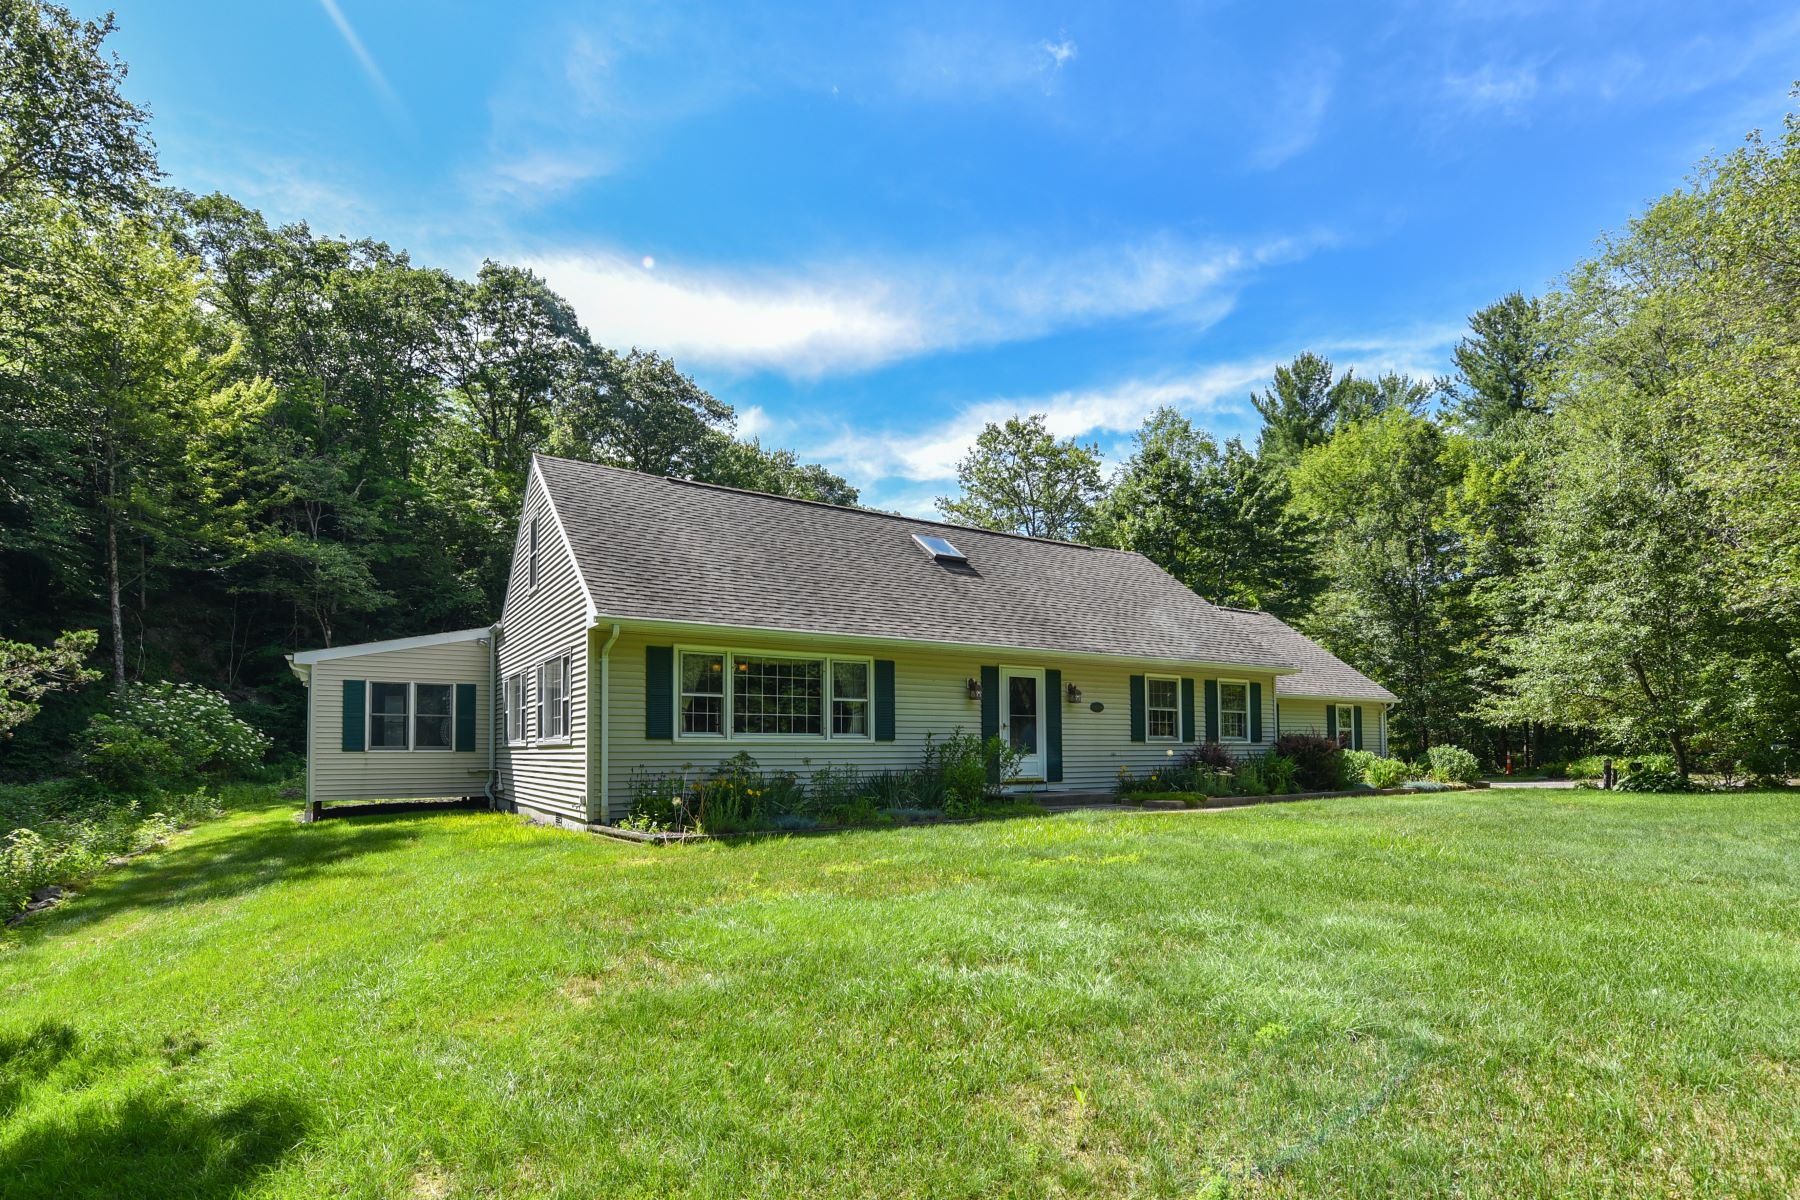 Single Family Homes for Sale at 73 West West Hill Road Barkhamsted, Connecticut 06063 United States